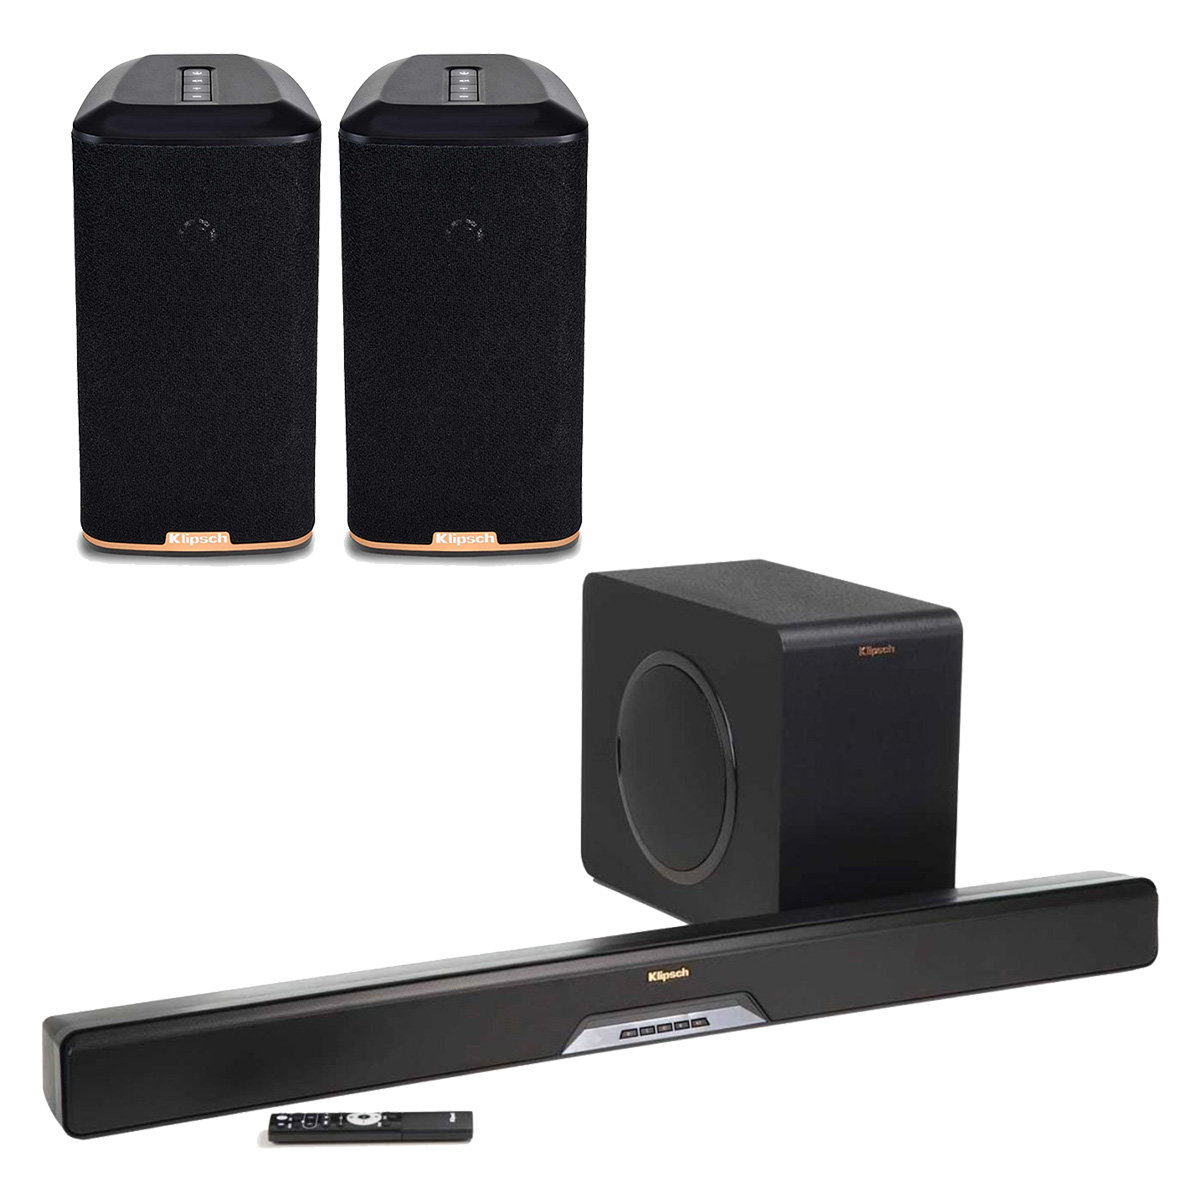 Subwoofer Wireless Speakers Wire Center 11796d12469976383wayswitchdiagramschematic3way6lightsjpg Klipsch Rsb 14 Reference Sound Bar With Rw 1 Rh Worldwidestereo Com